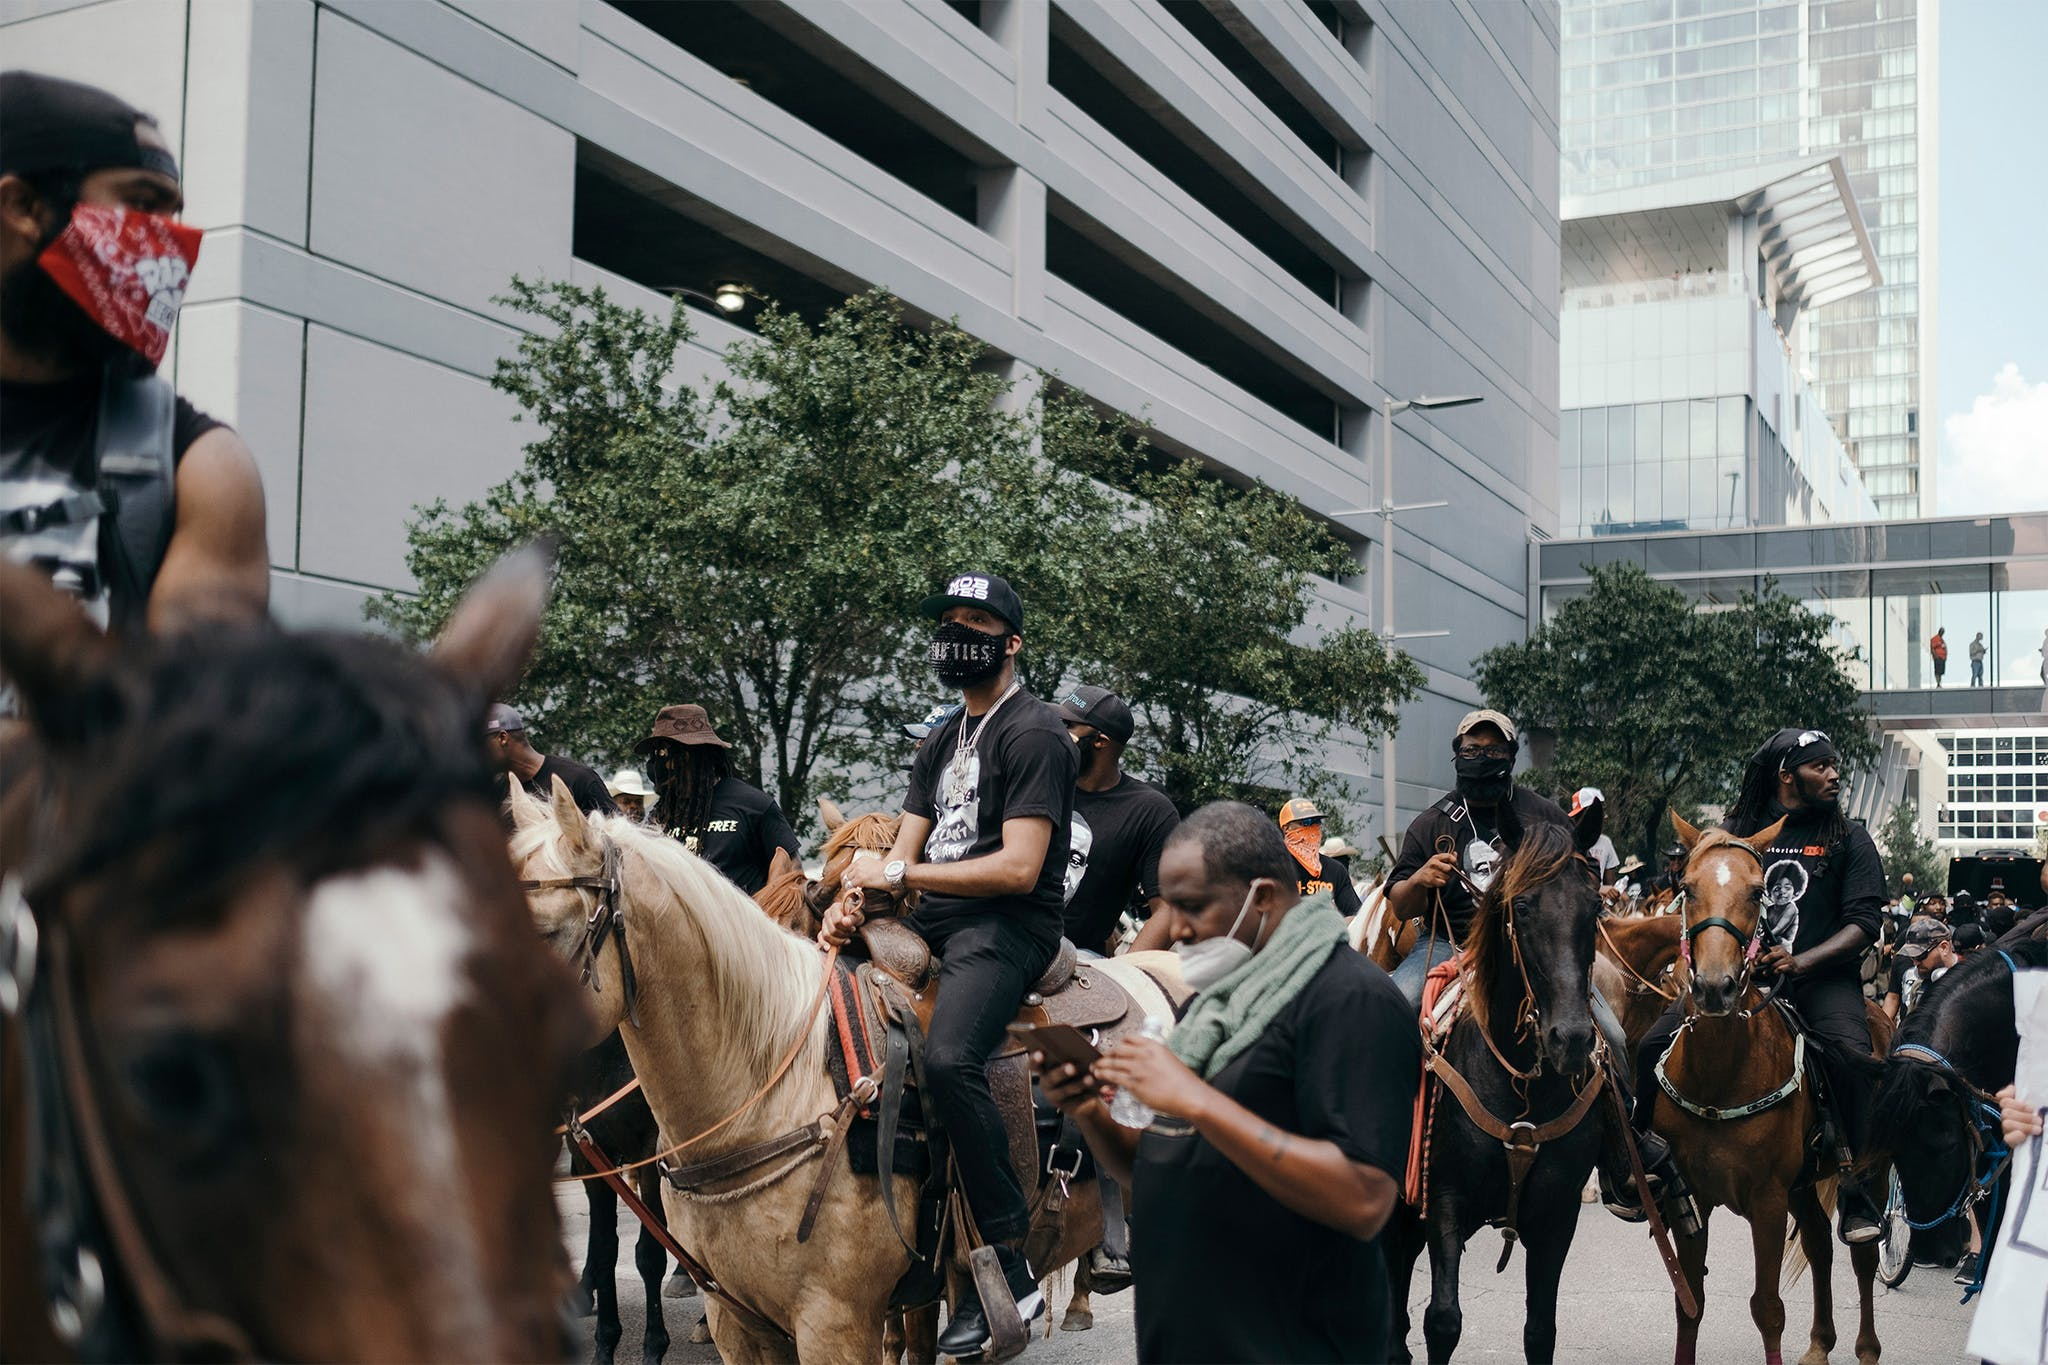 J Prince Jr, center, prepares to ride his horse down Walker street during a march to honor the memory of George Floyd in downtown Houston on June 2, 2020.